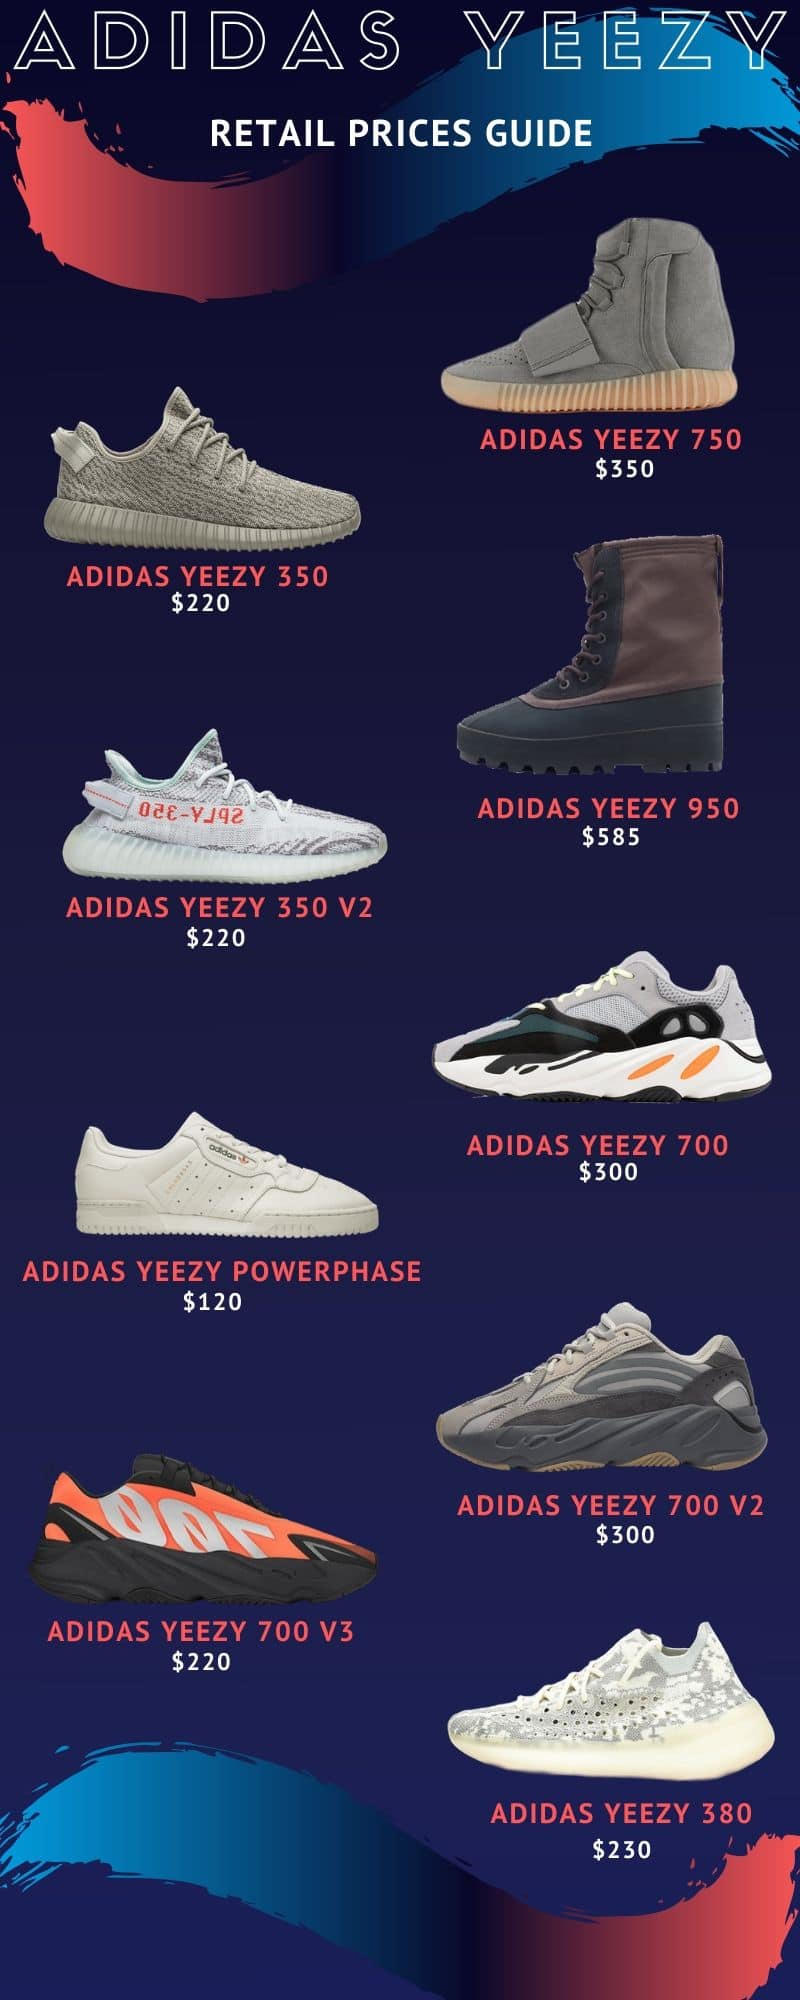 Yeezy sneakers retail price guide